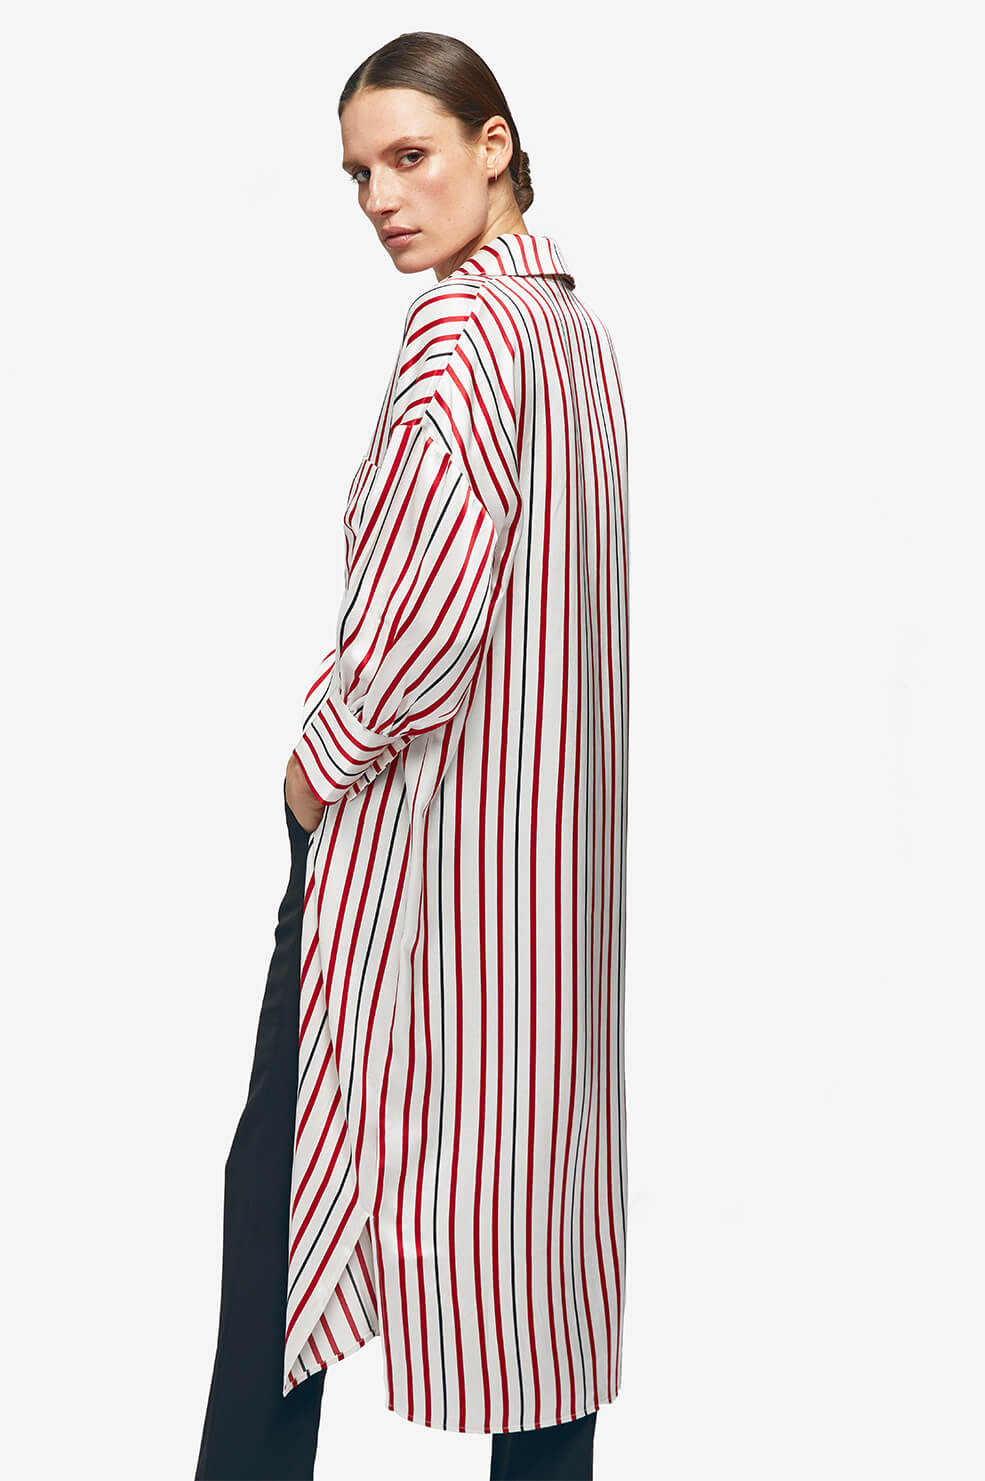 ANINE BING Milly Shirt Dress - Multi Stripe